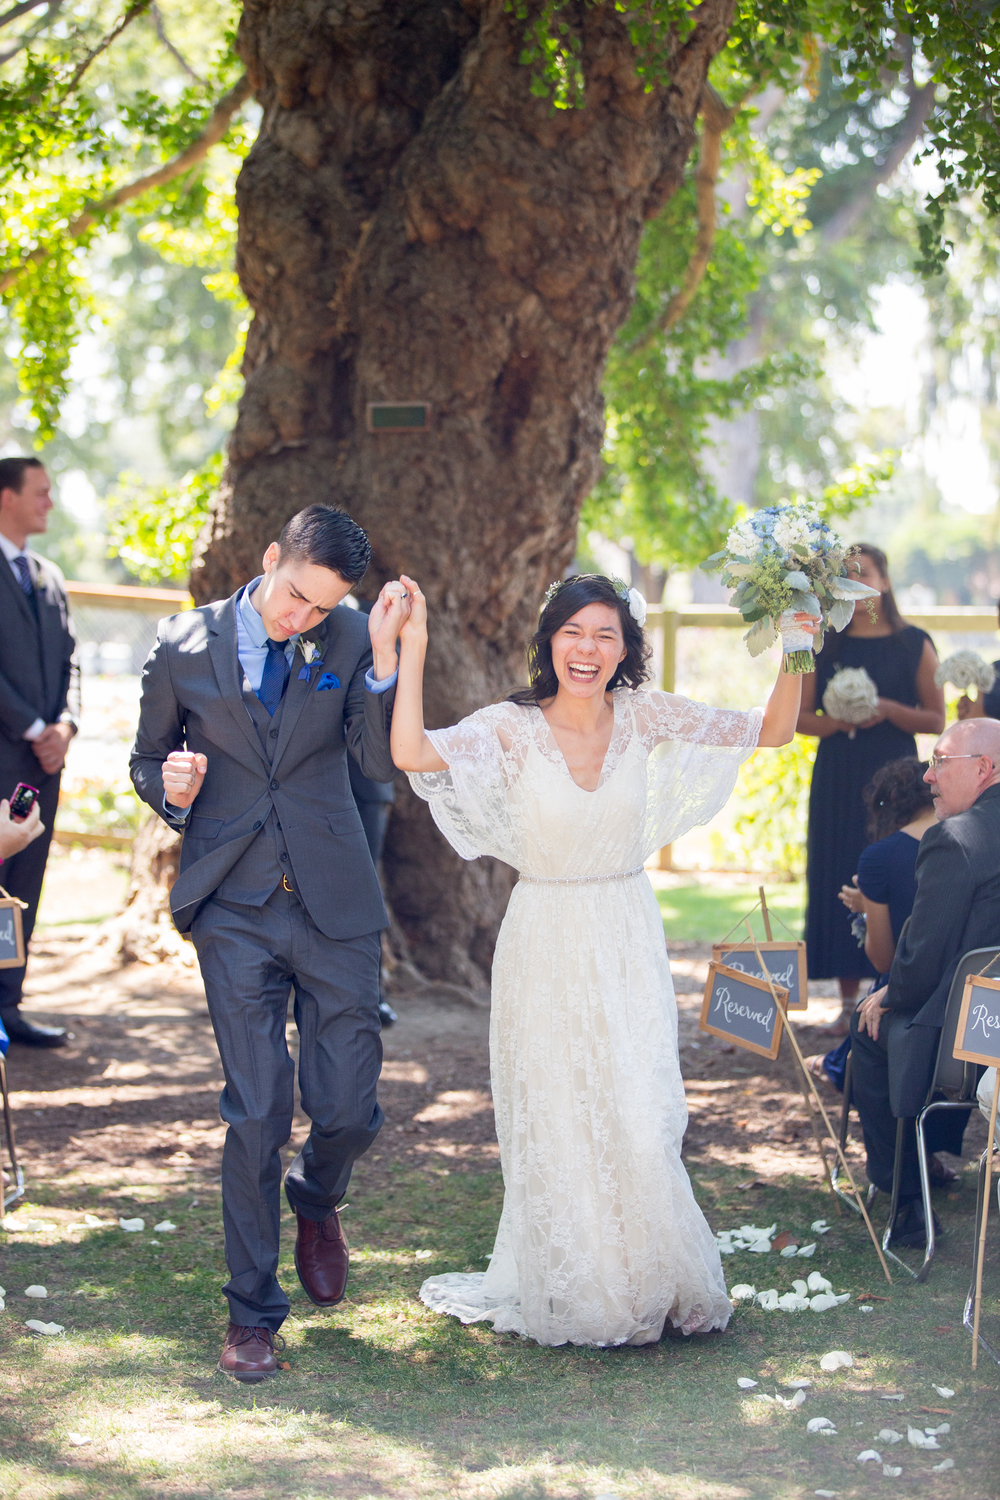 Chico California Wedding and Engagement Photography by TréCreative - Fremont Wedding Photography (185 of 261).jpg